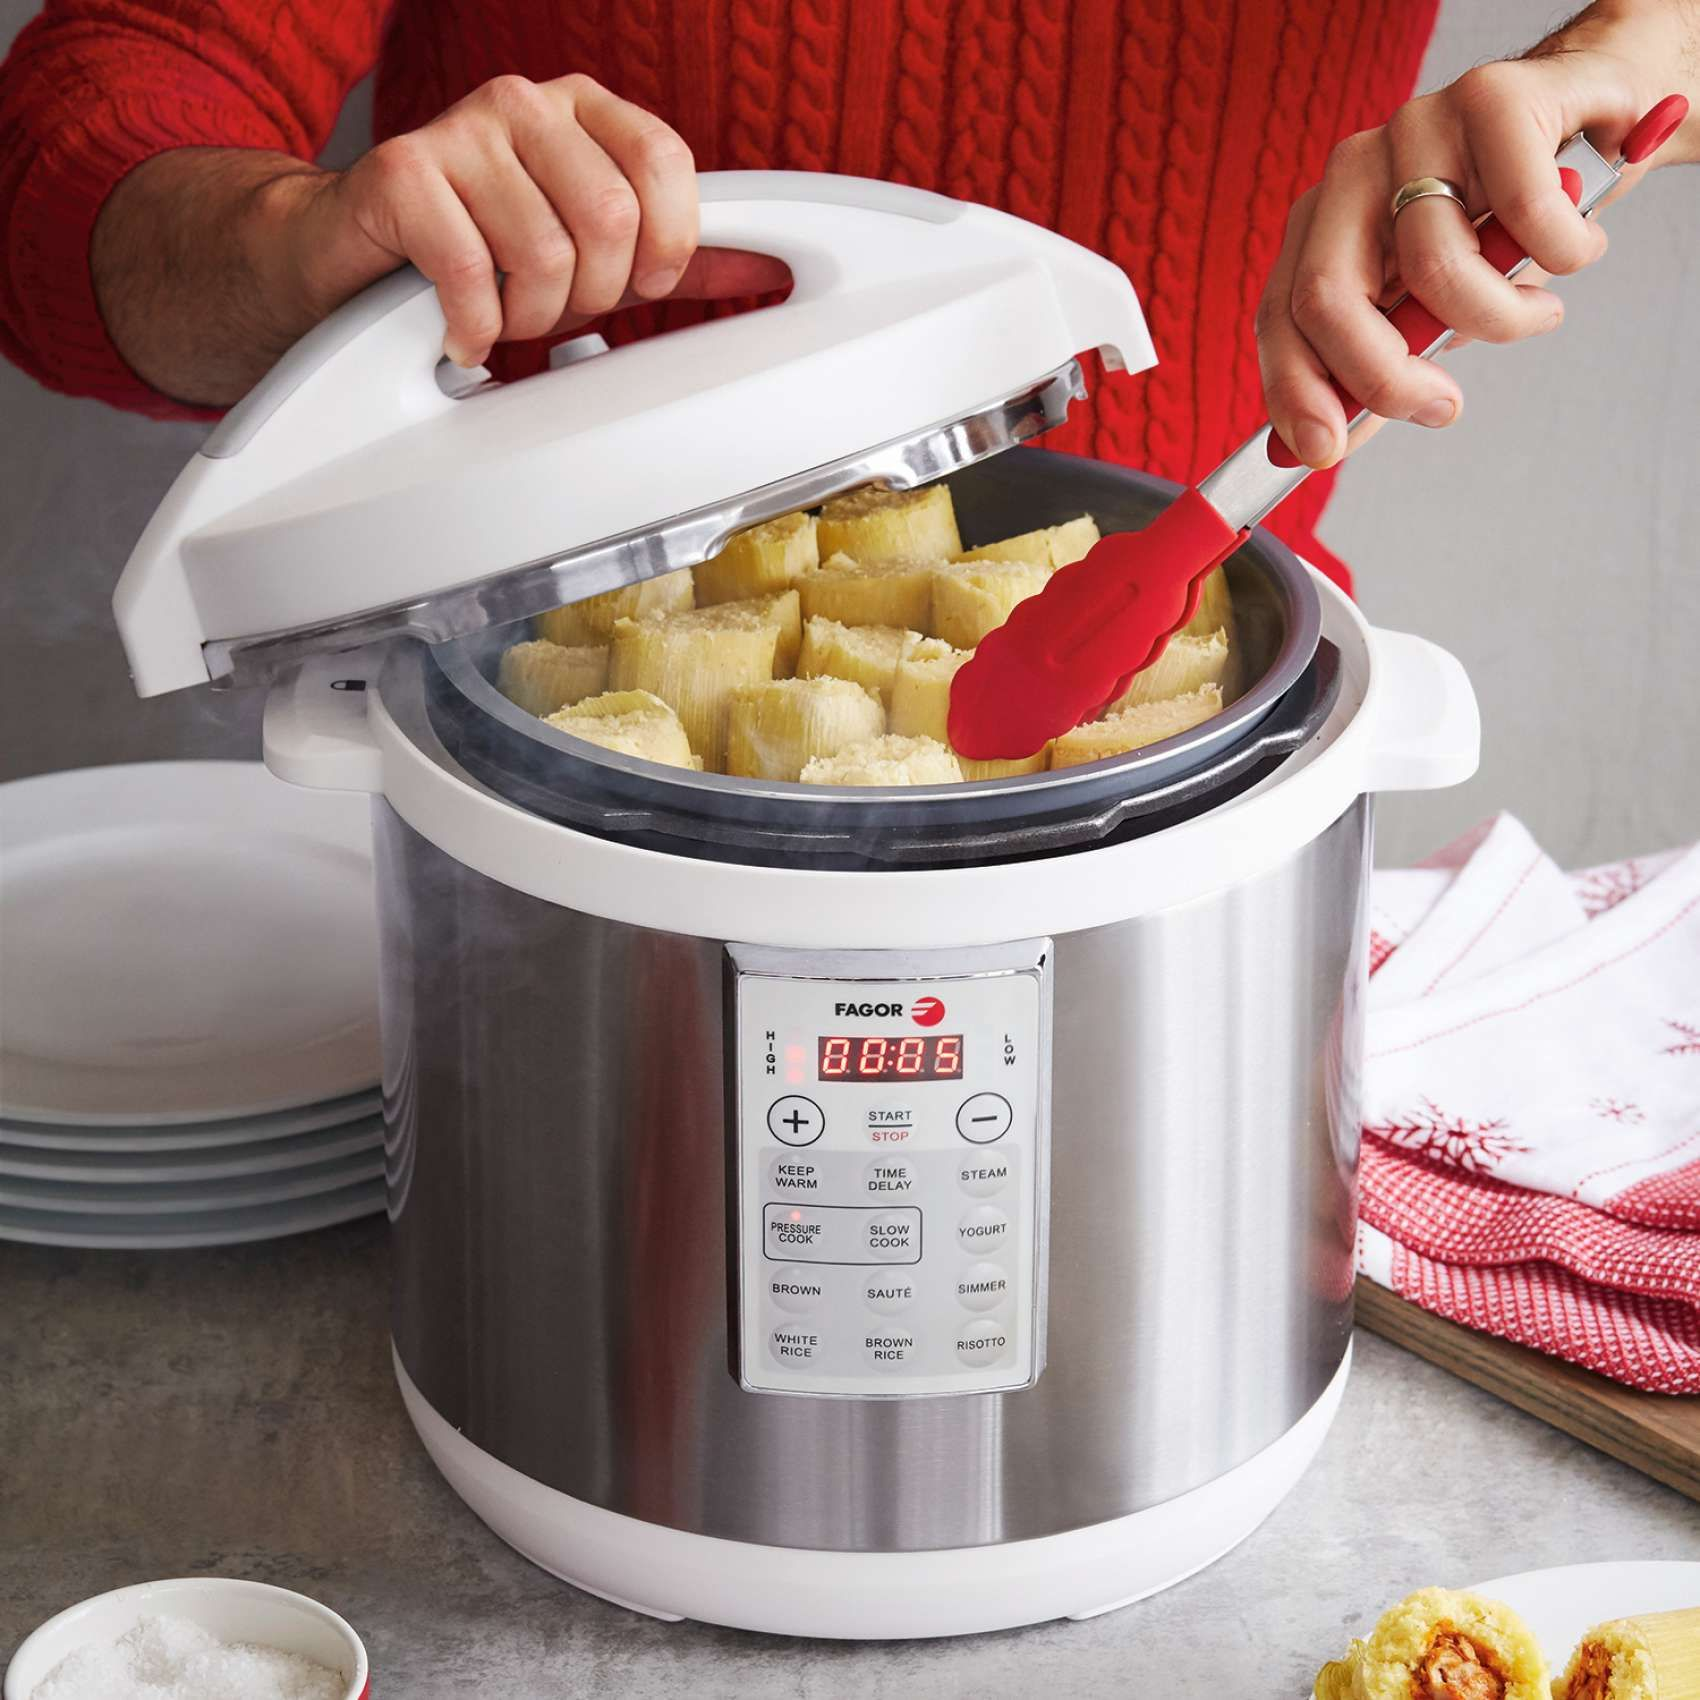 Fagor lux multicooker white sur la table yumm tools of the